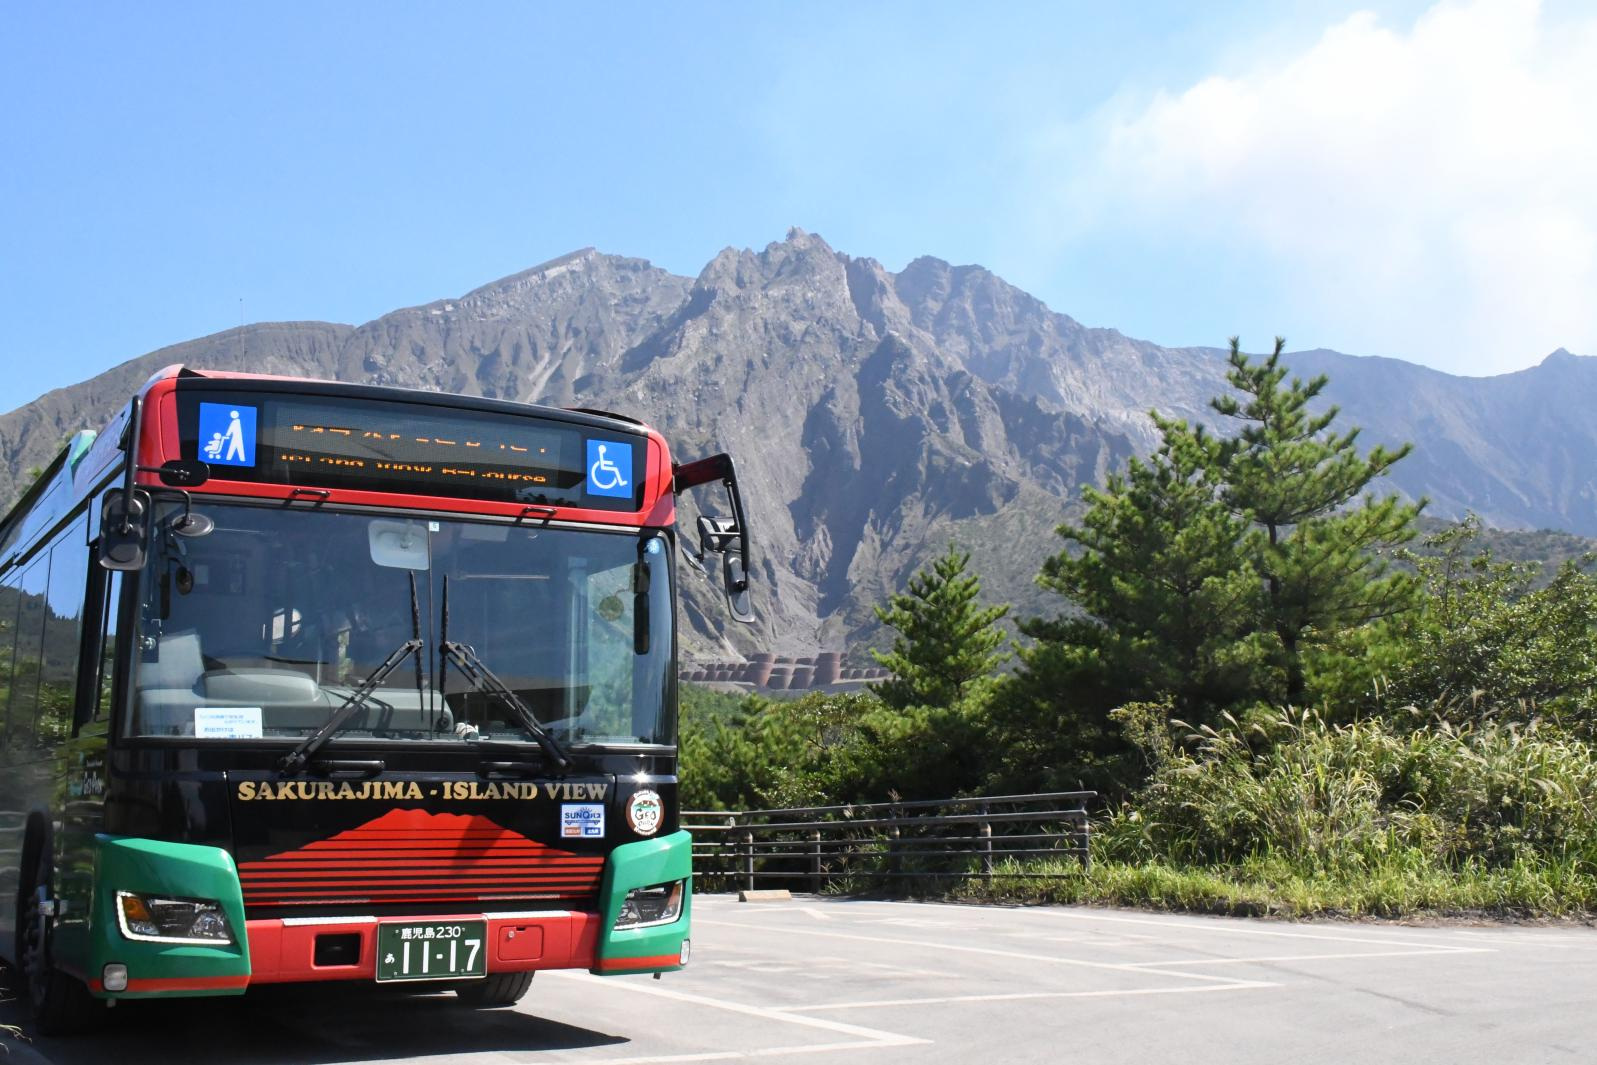 Sakurajima Island View bus makes a loop trip around Sakurajima-1